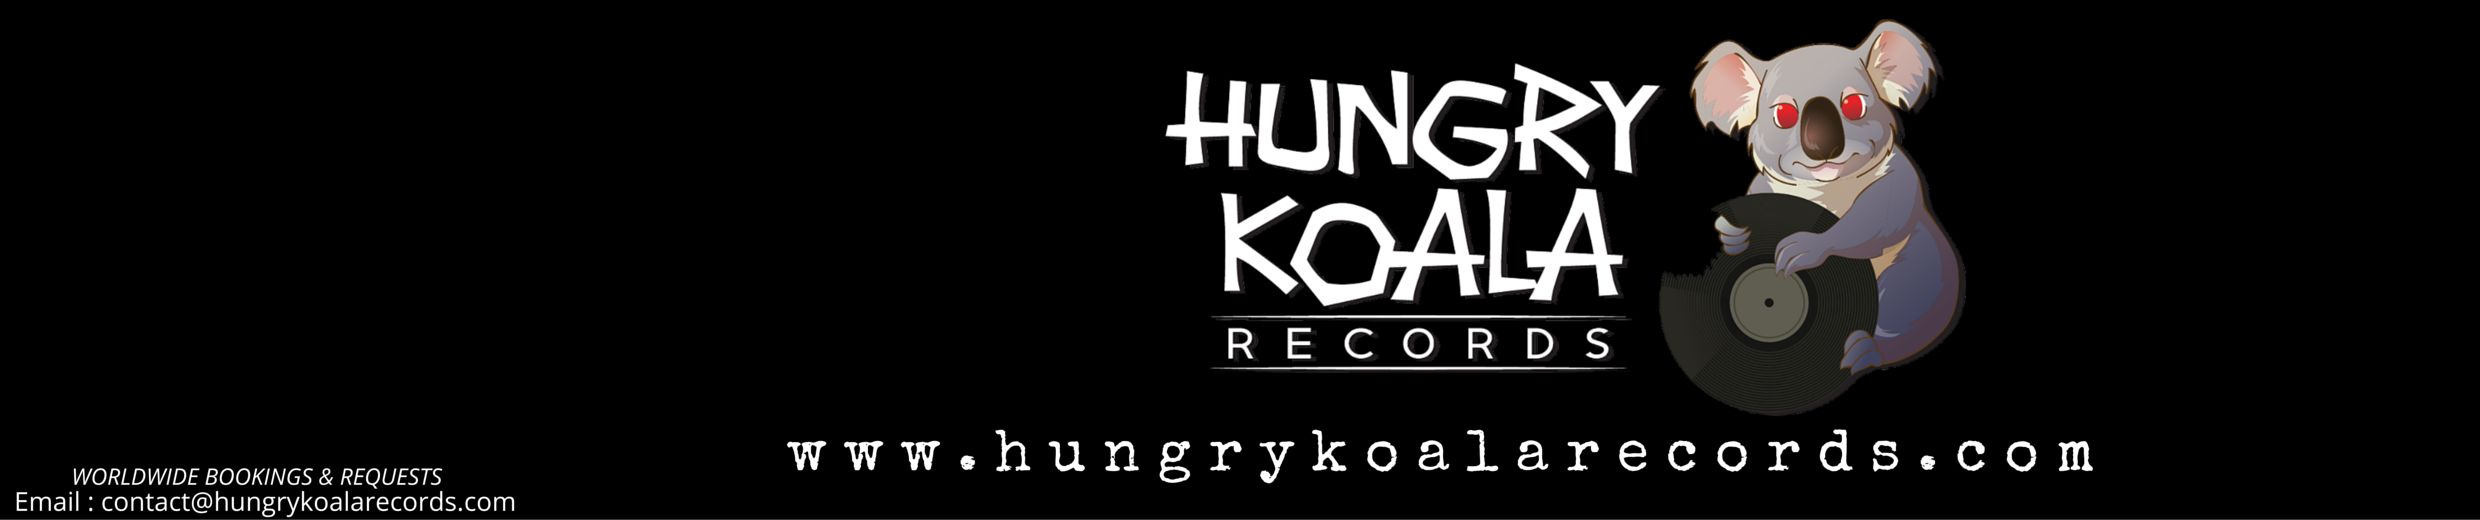 Hungry Koala Records | Free Listening on SoundCloud